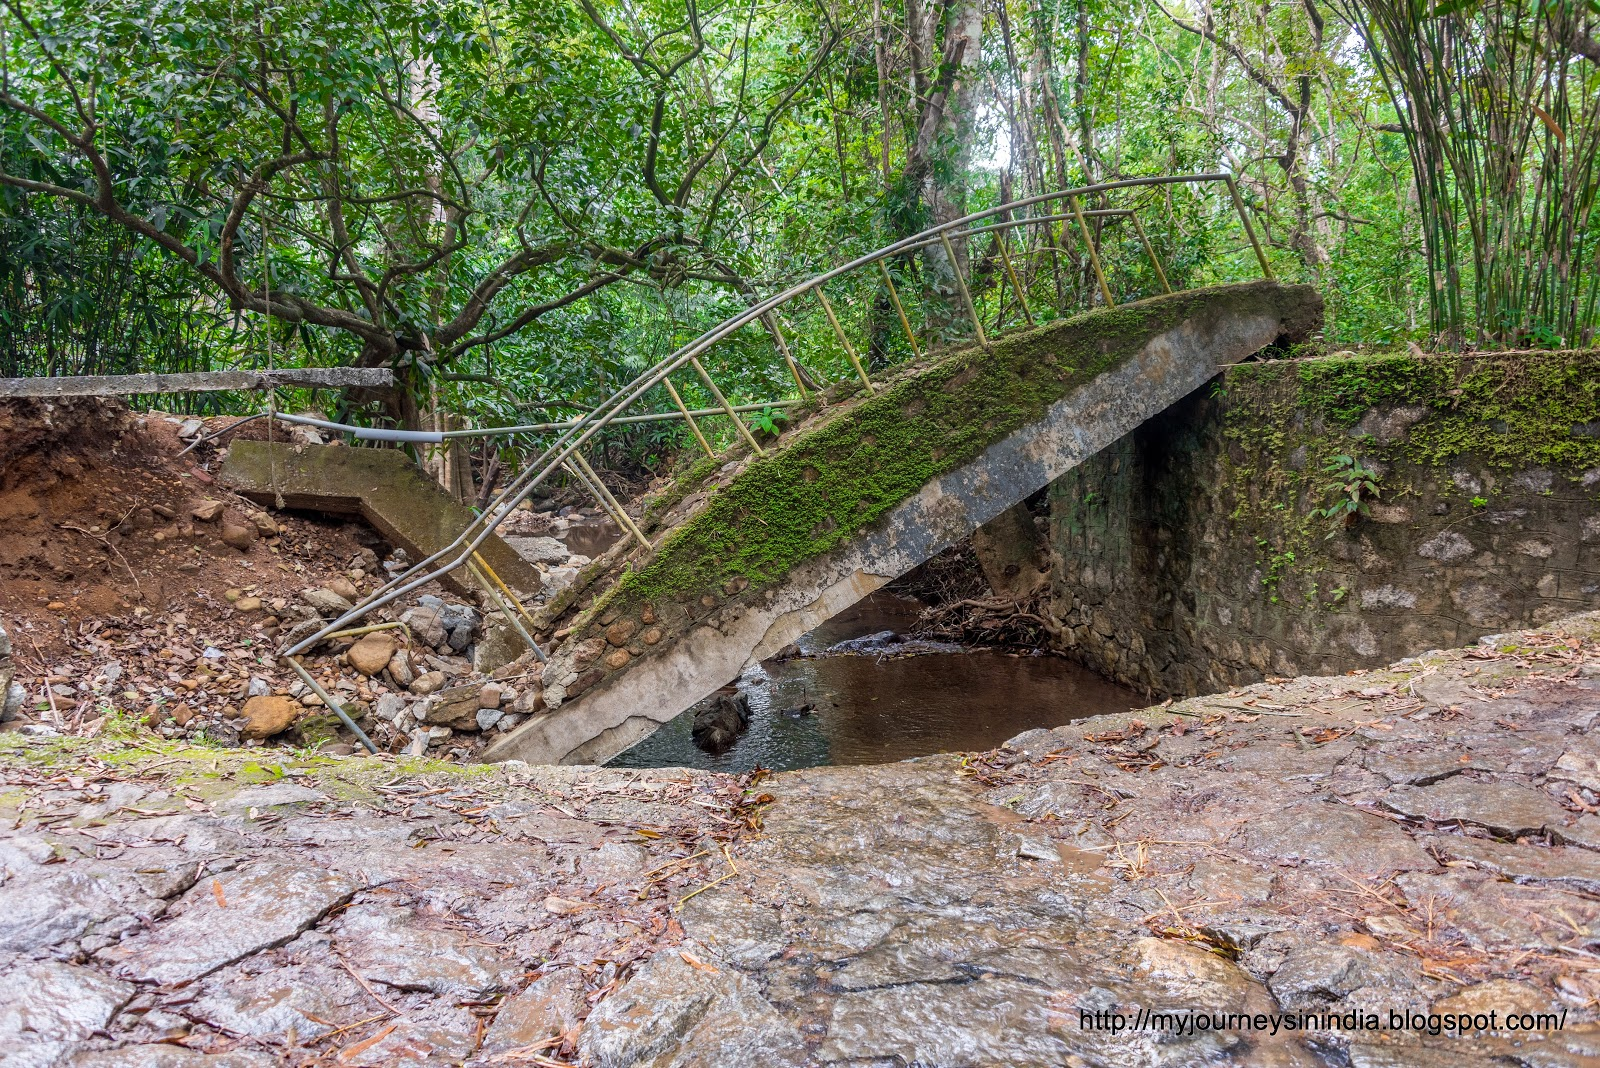 Broken Bridge On the way to Meenmutti Falls